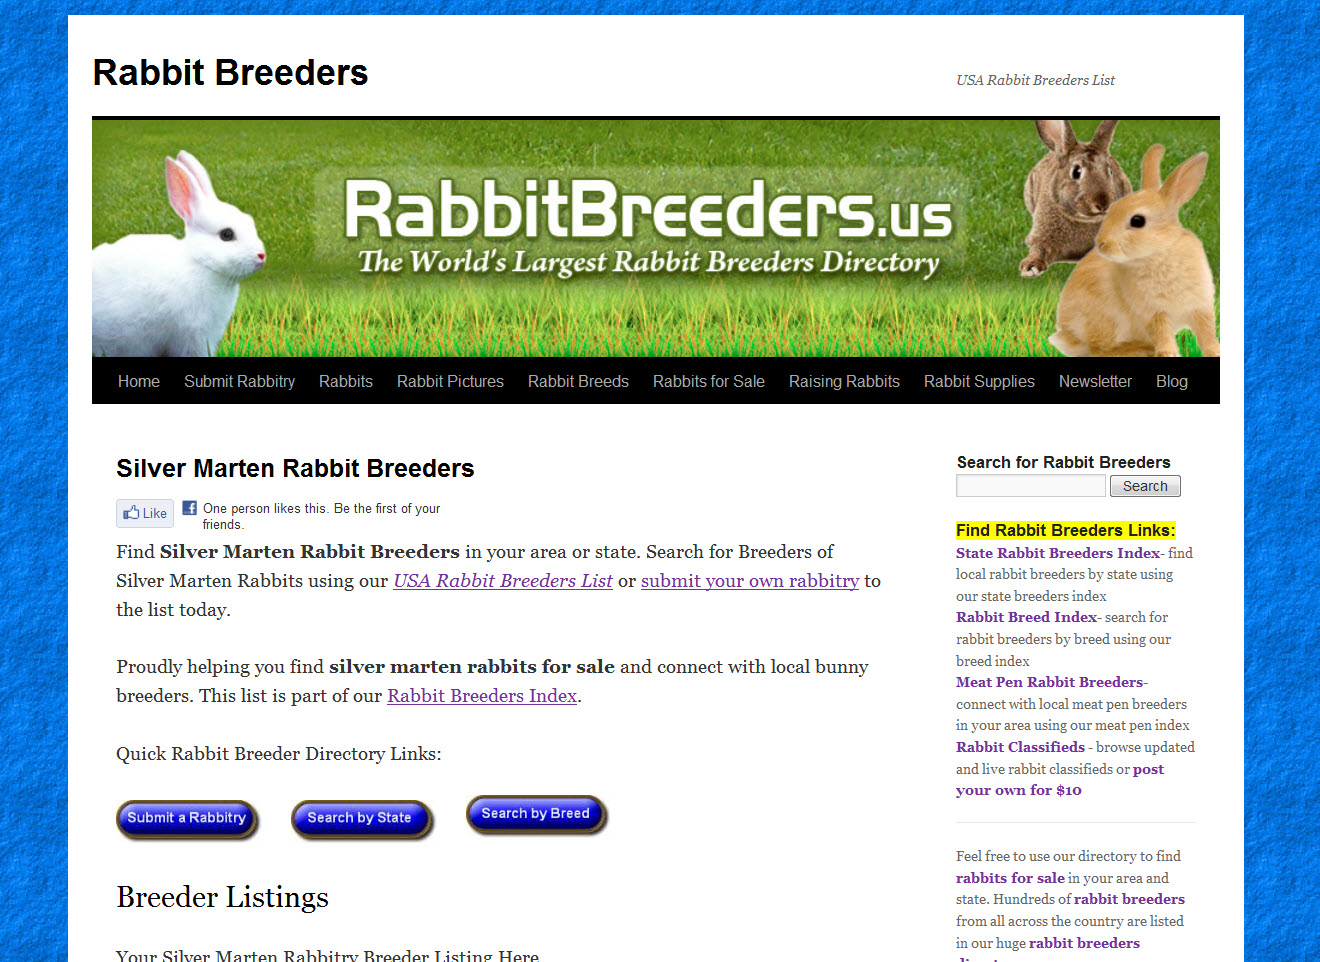 Silver Marten Rabbits for Sale